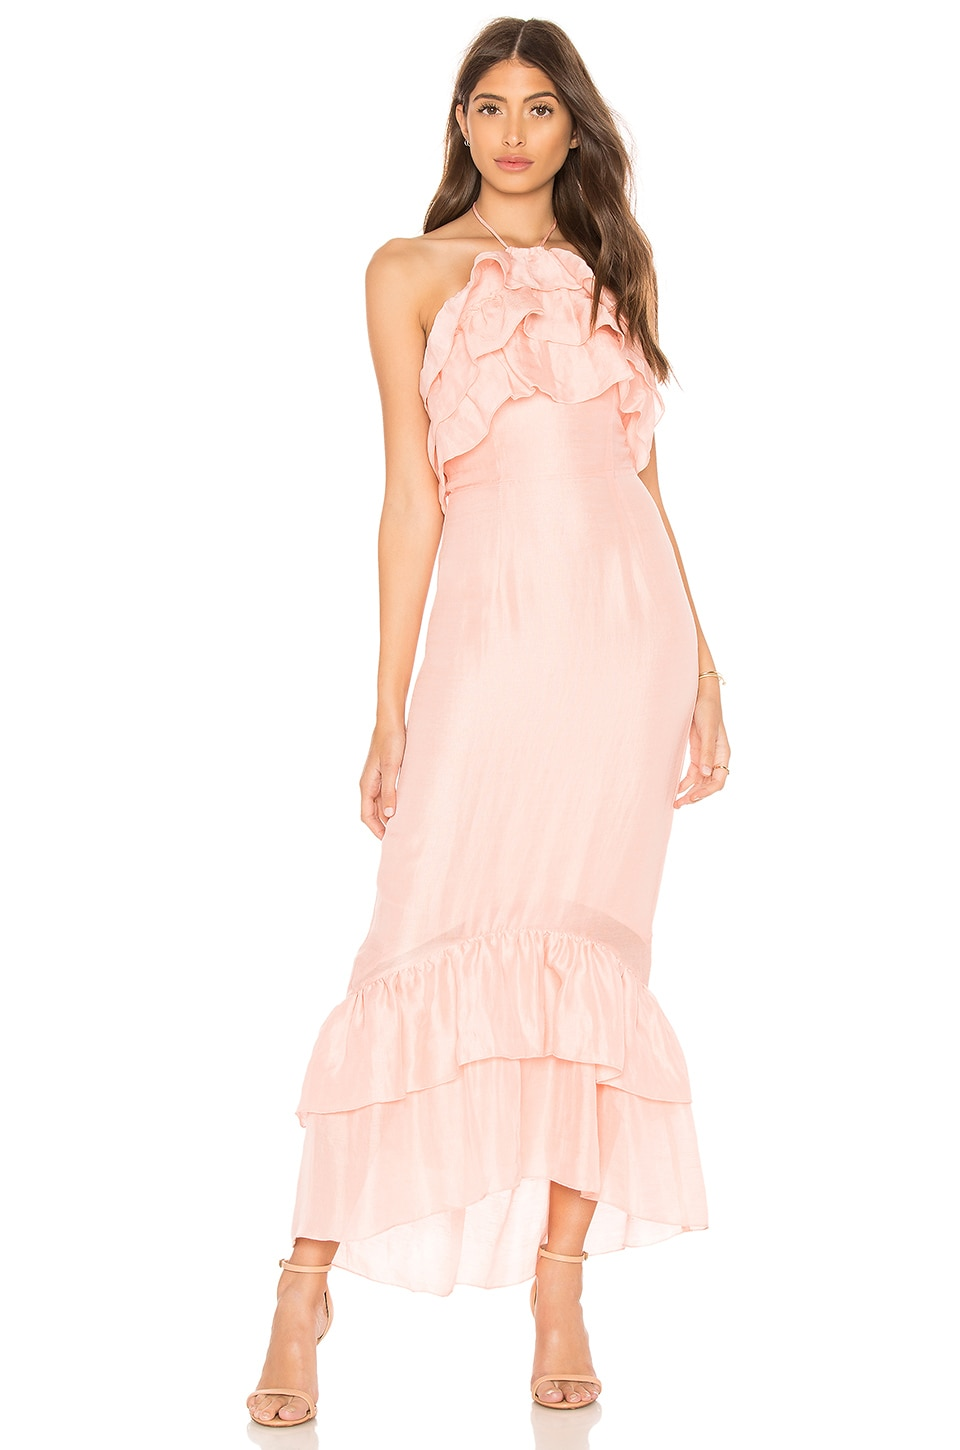 Suboo Real Love Maxi Dress in Peach